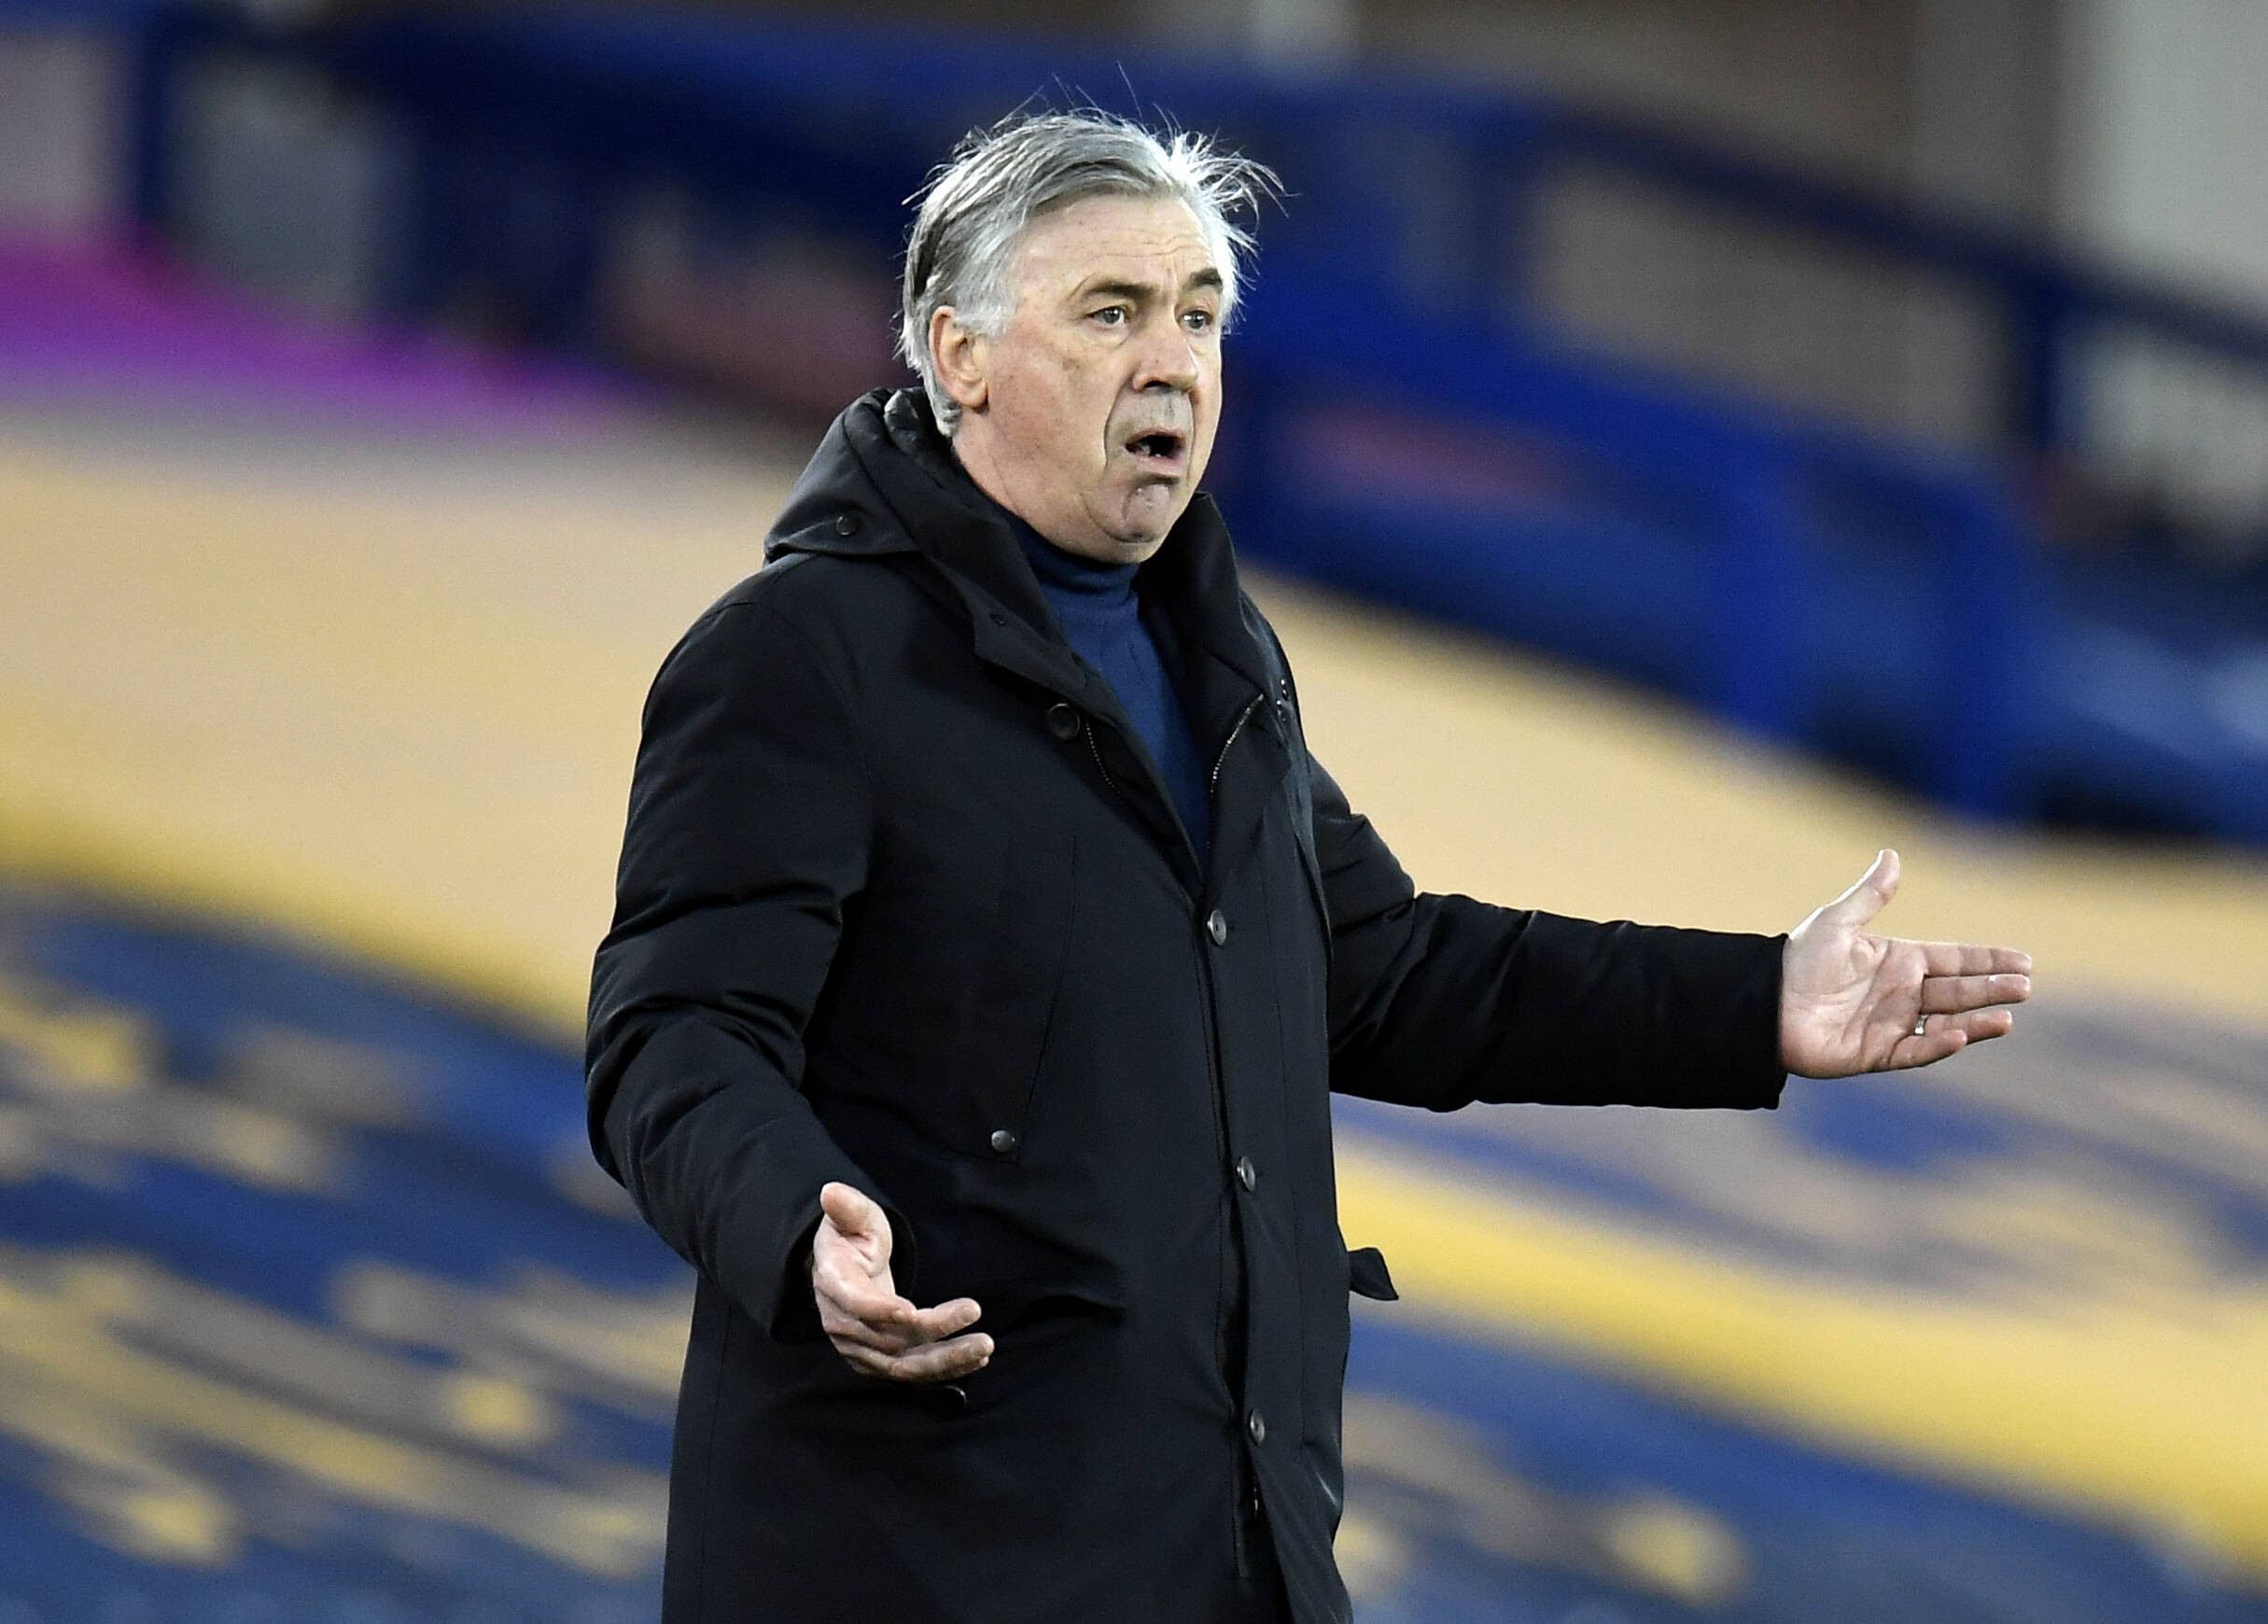 Carlo Ancelotti is back at Real Madrid